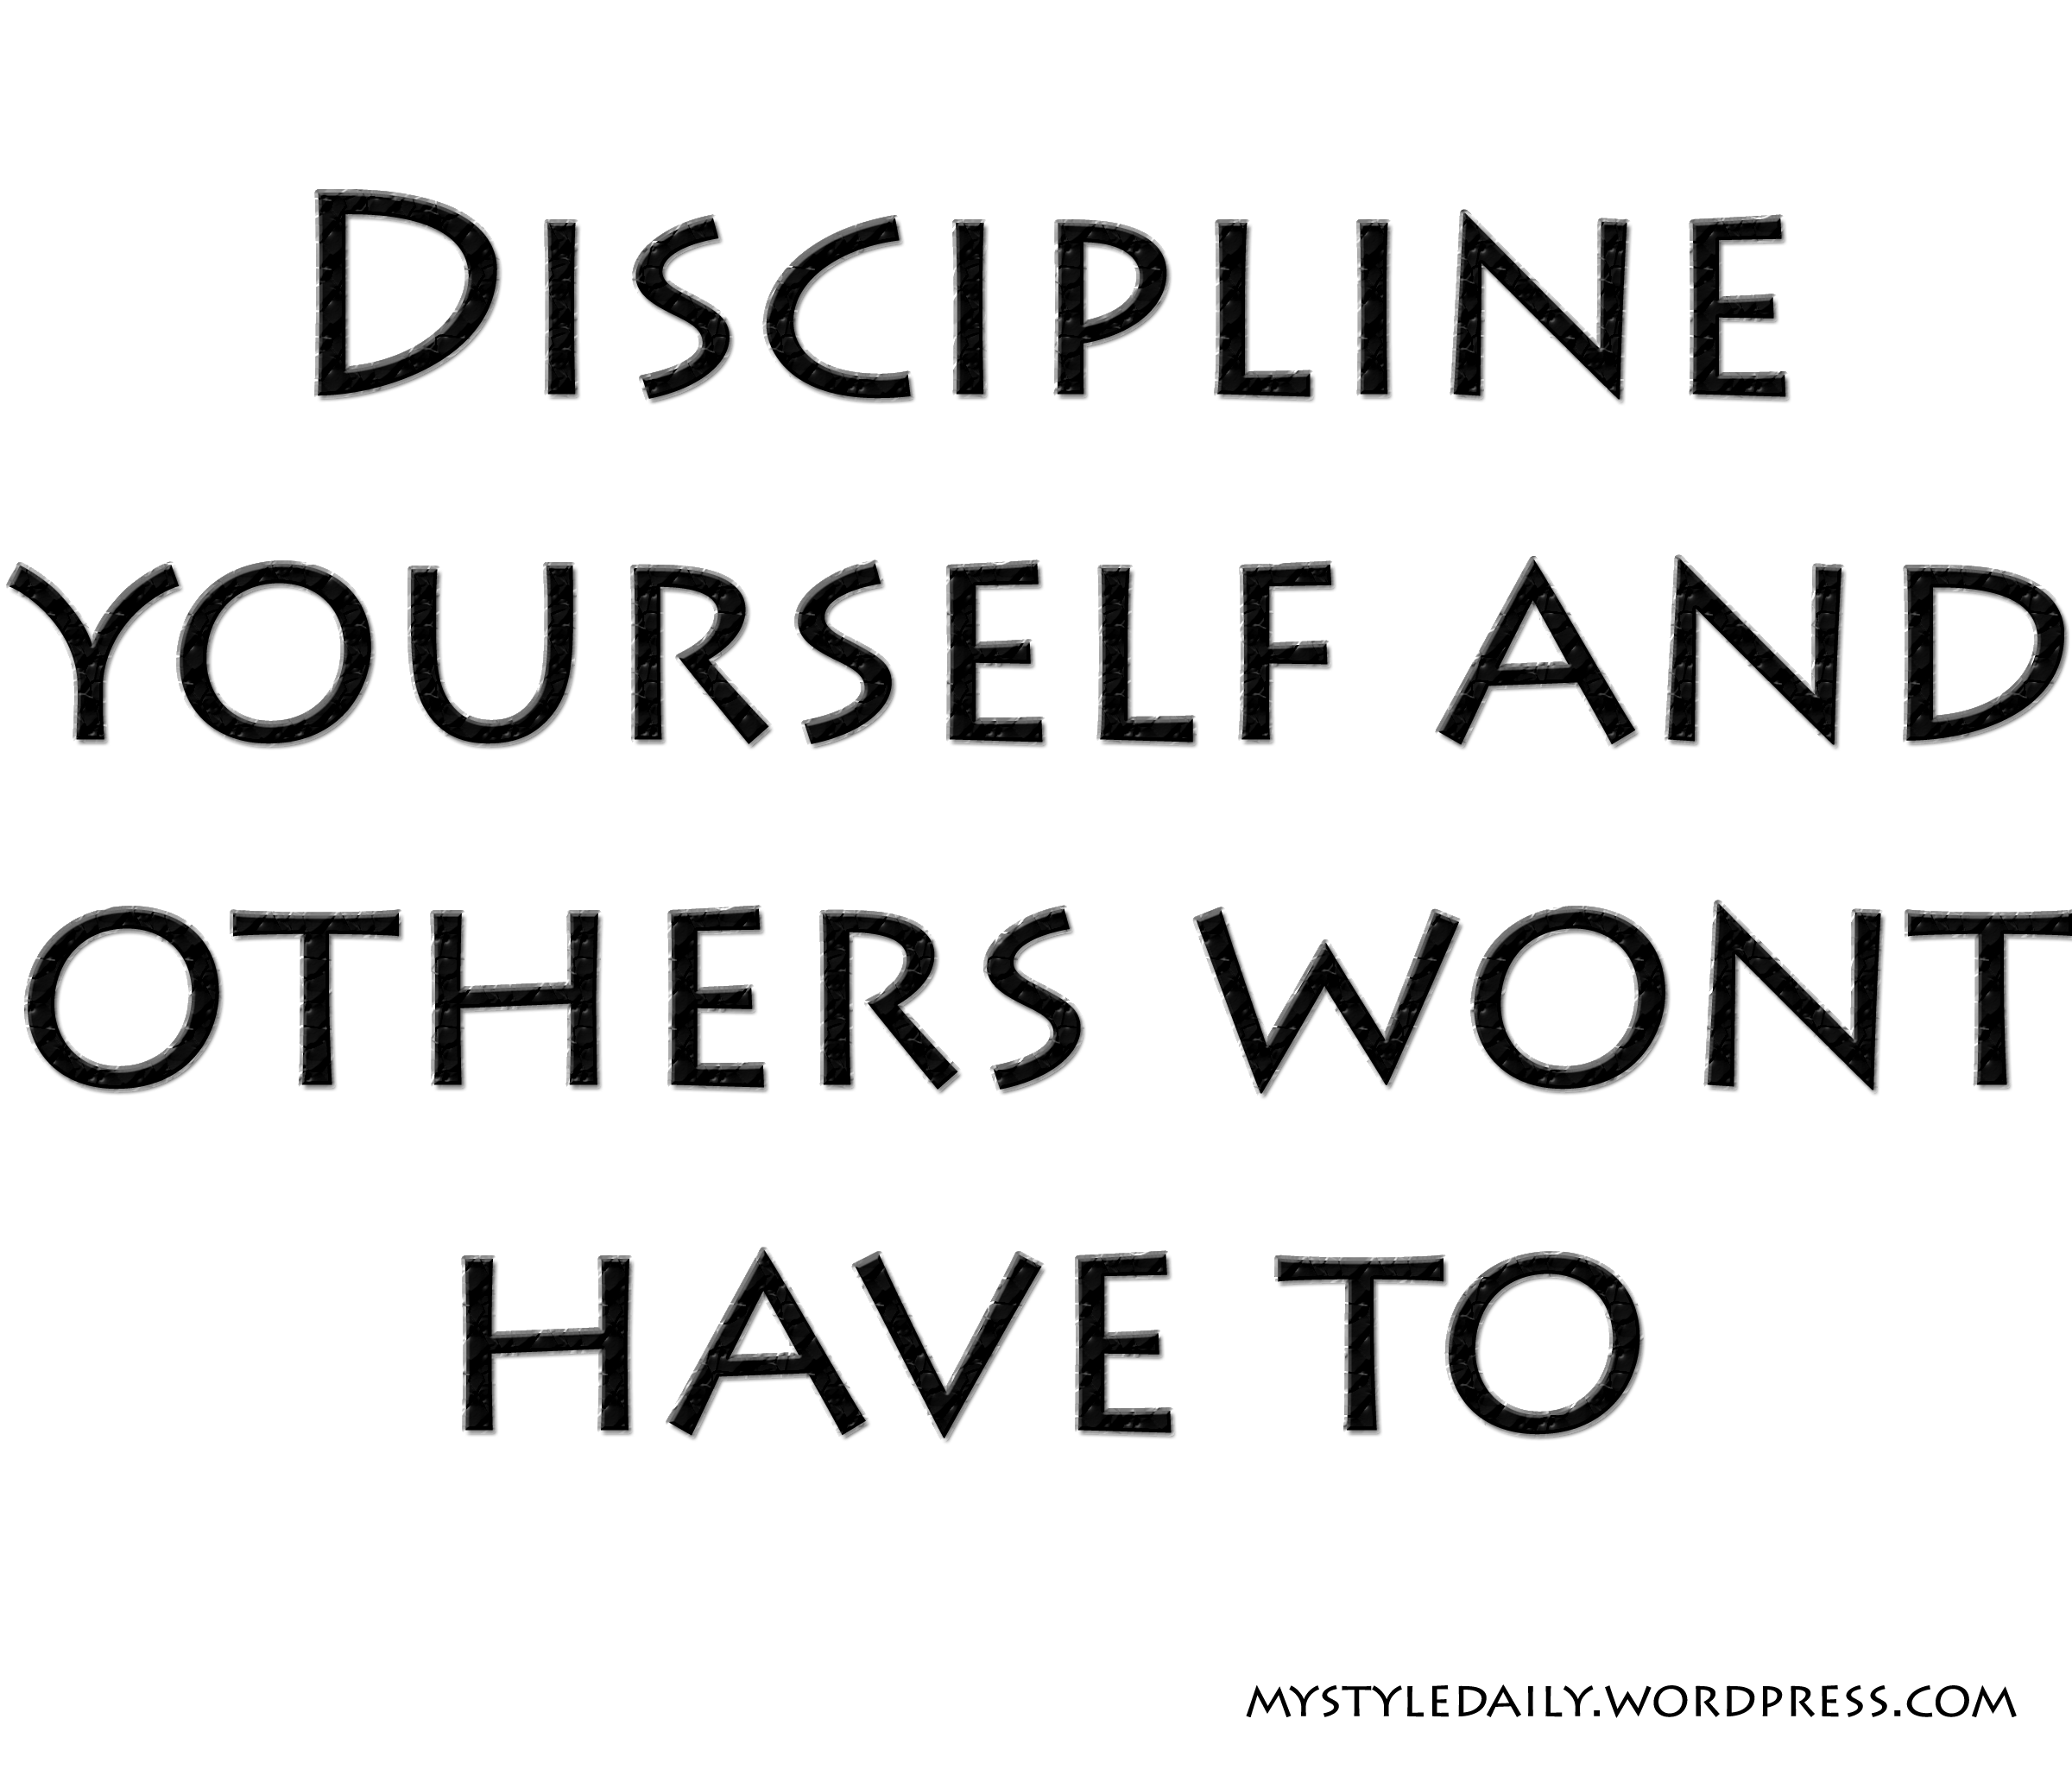 Discipline yourself and others wont have to.